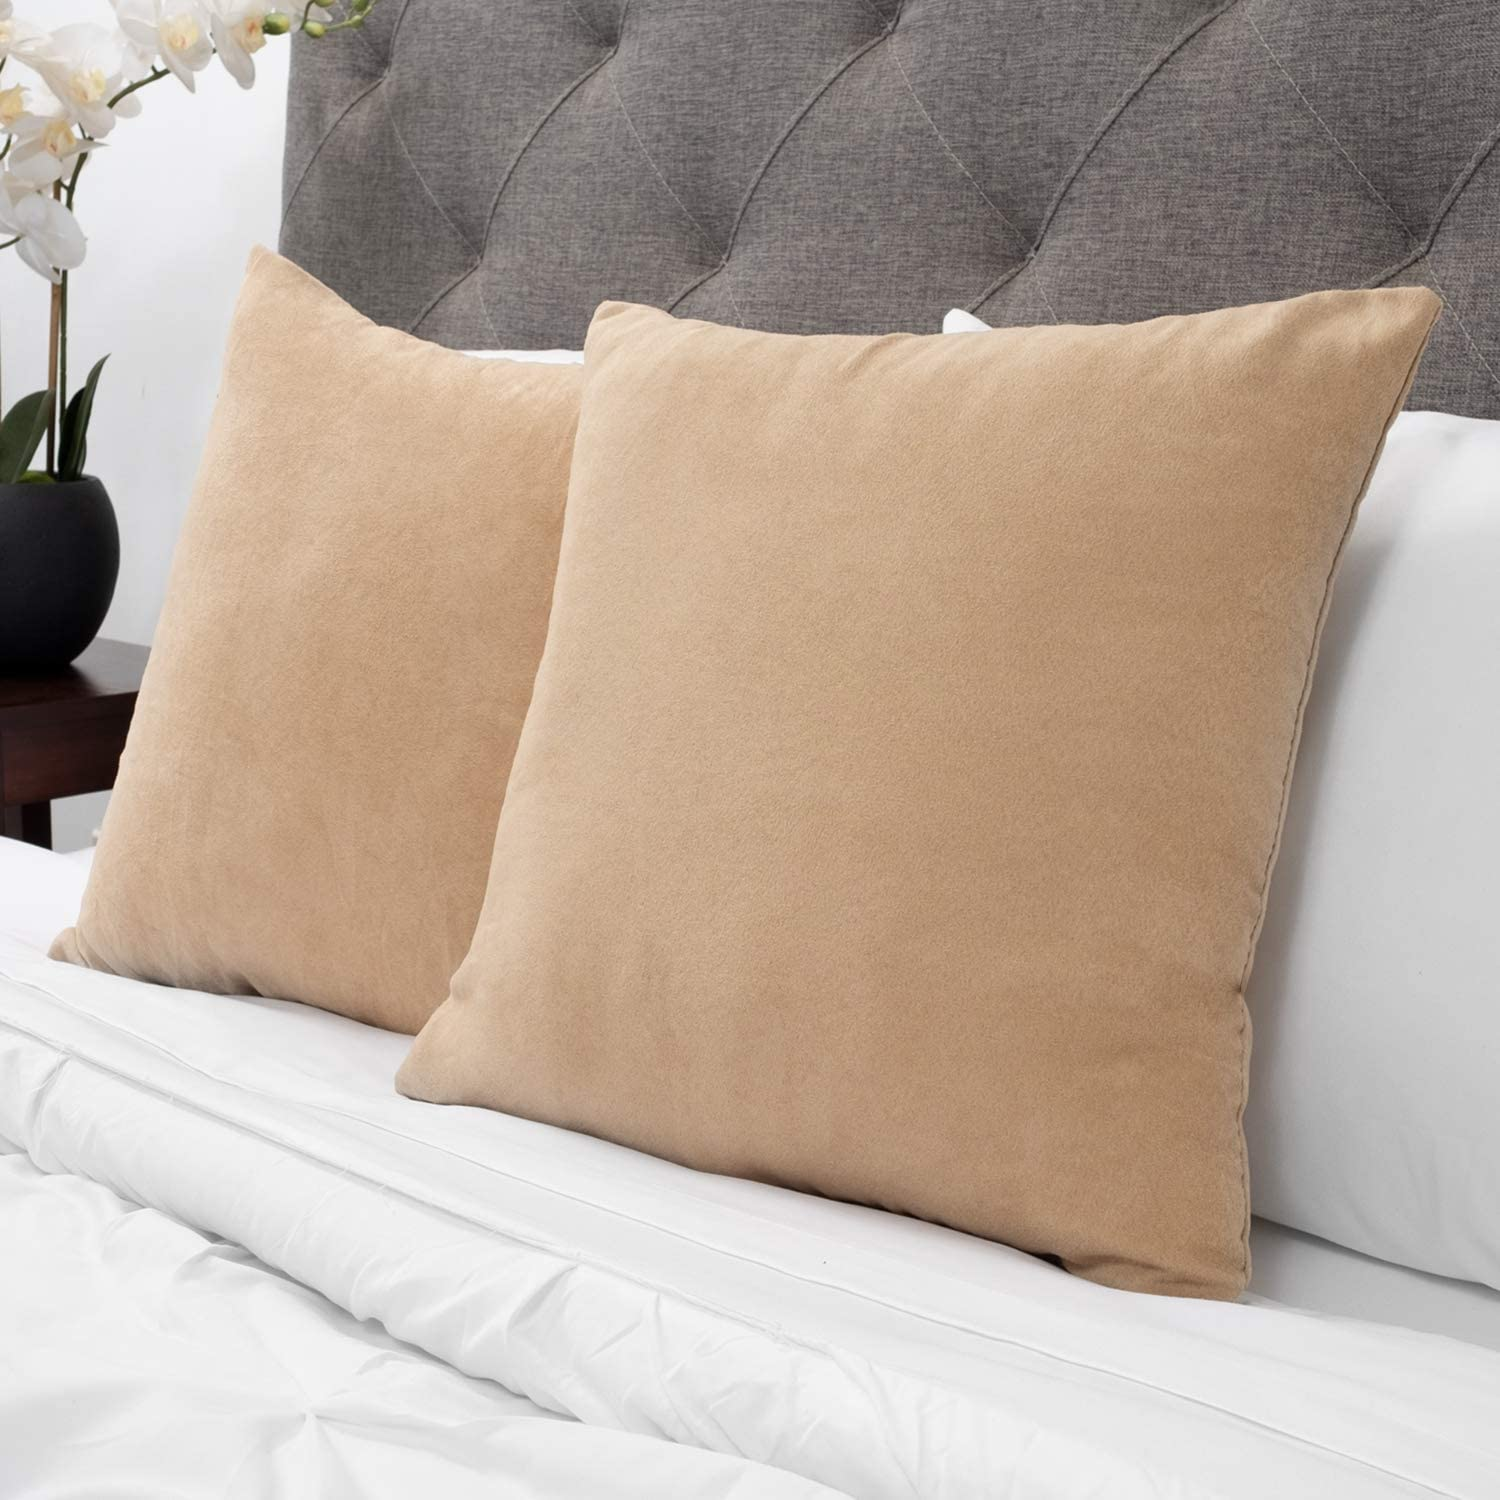 Sofa Sweet Home Collection Decorative Pillows 2 Pack Faux Leather Soft Throw Cushion Solid Color for Couch Chair 18 x 18 Coffee Brown Bed